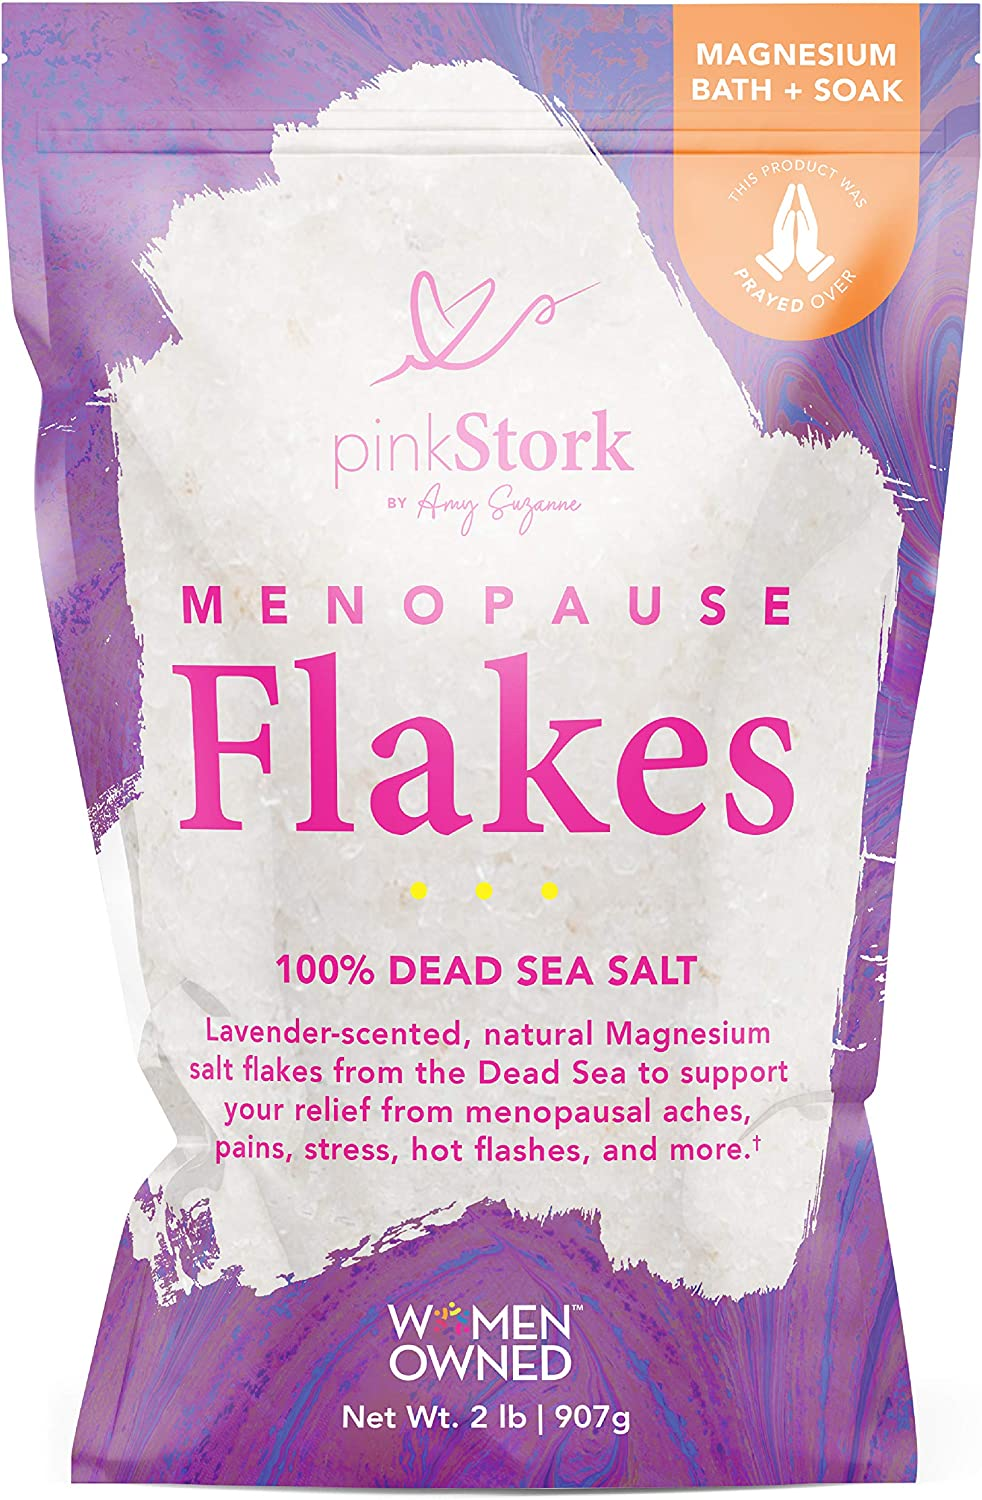 Pink Stork Menopause Flakes: Relaxing Lavender Scented Bath Salts for Women, Pure Magnesium from The Dead Sea, Supports Hot Flash Relief + Hormone Balance, Women-Owned, 2 Lbs